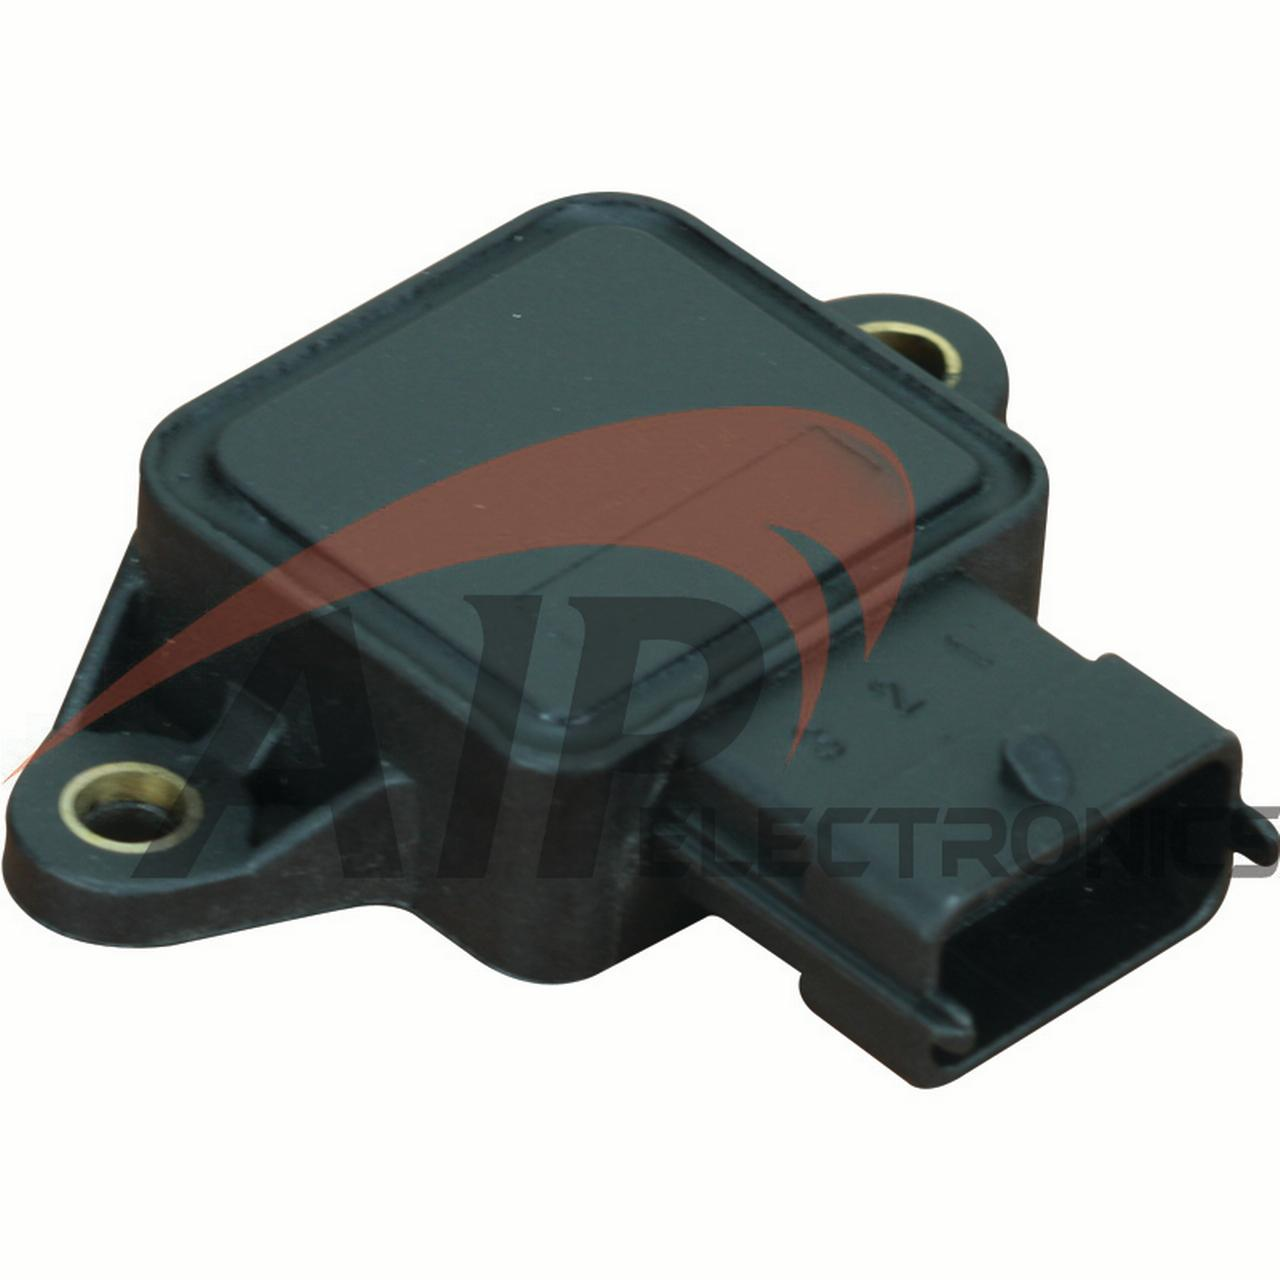 Brand New Throttle Position Sensor TPS For 1999-2005 Porsche 911 and Boxster Turbo Oem Fit TPS348 /& Many More Vehicles